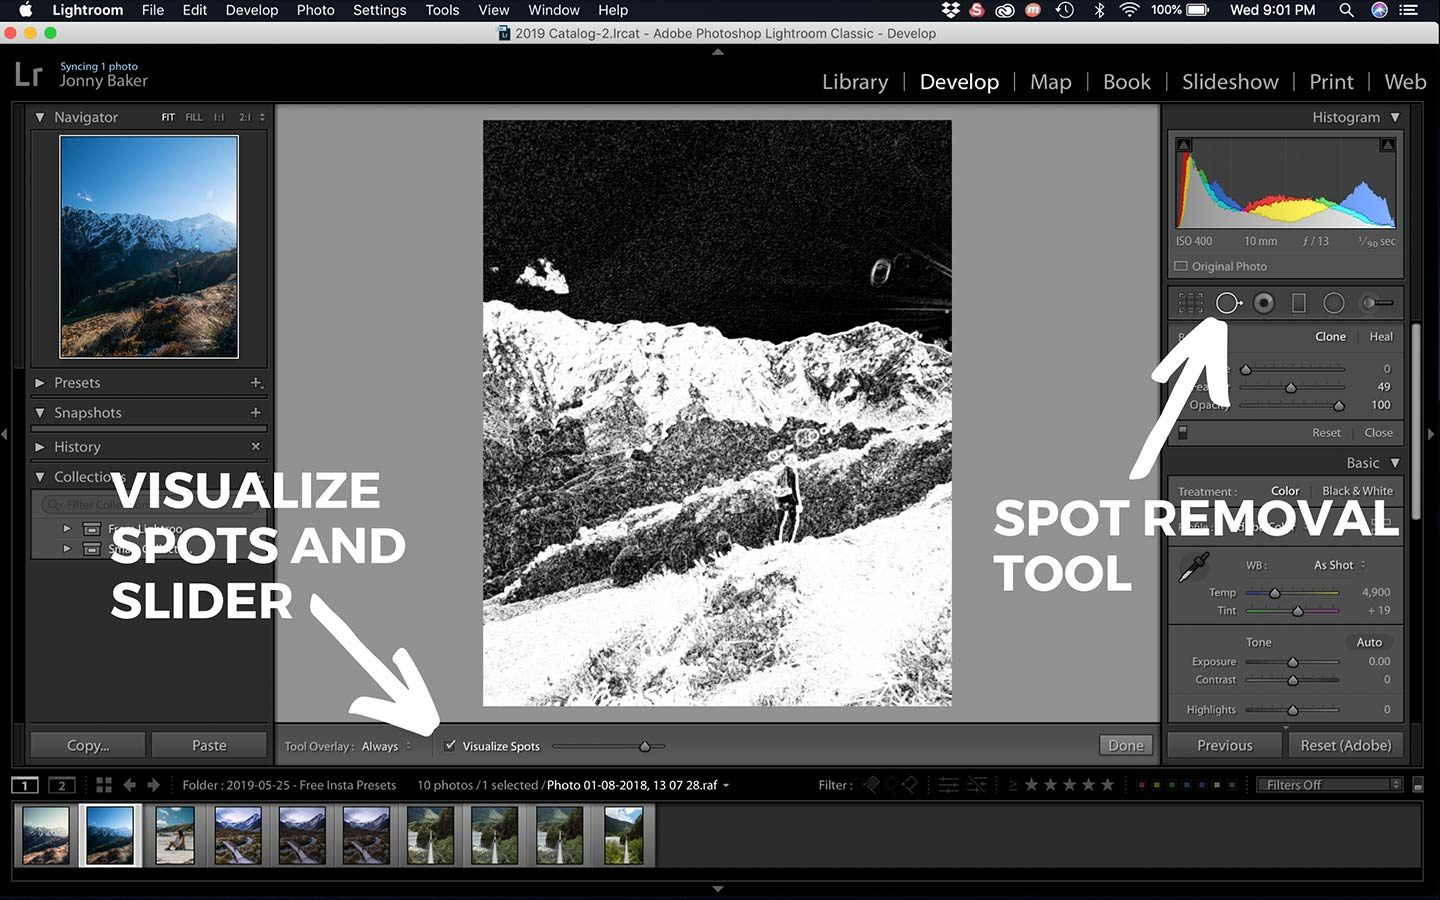 Visualise spots is a great Lightroom hack that helps you identify dust spots on your photos. You can see what it looks like from this screenshot.